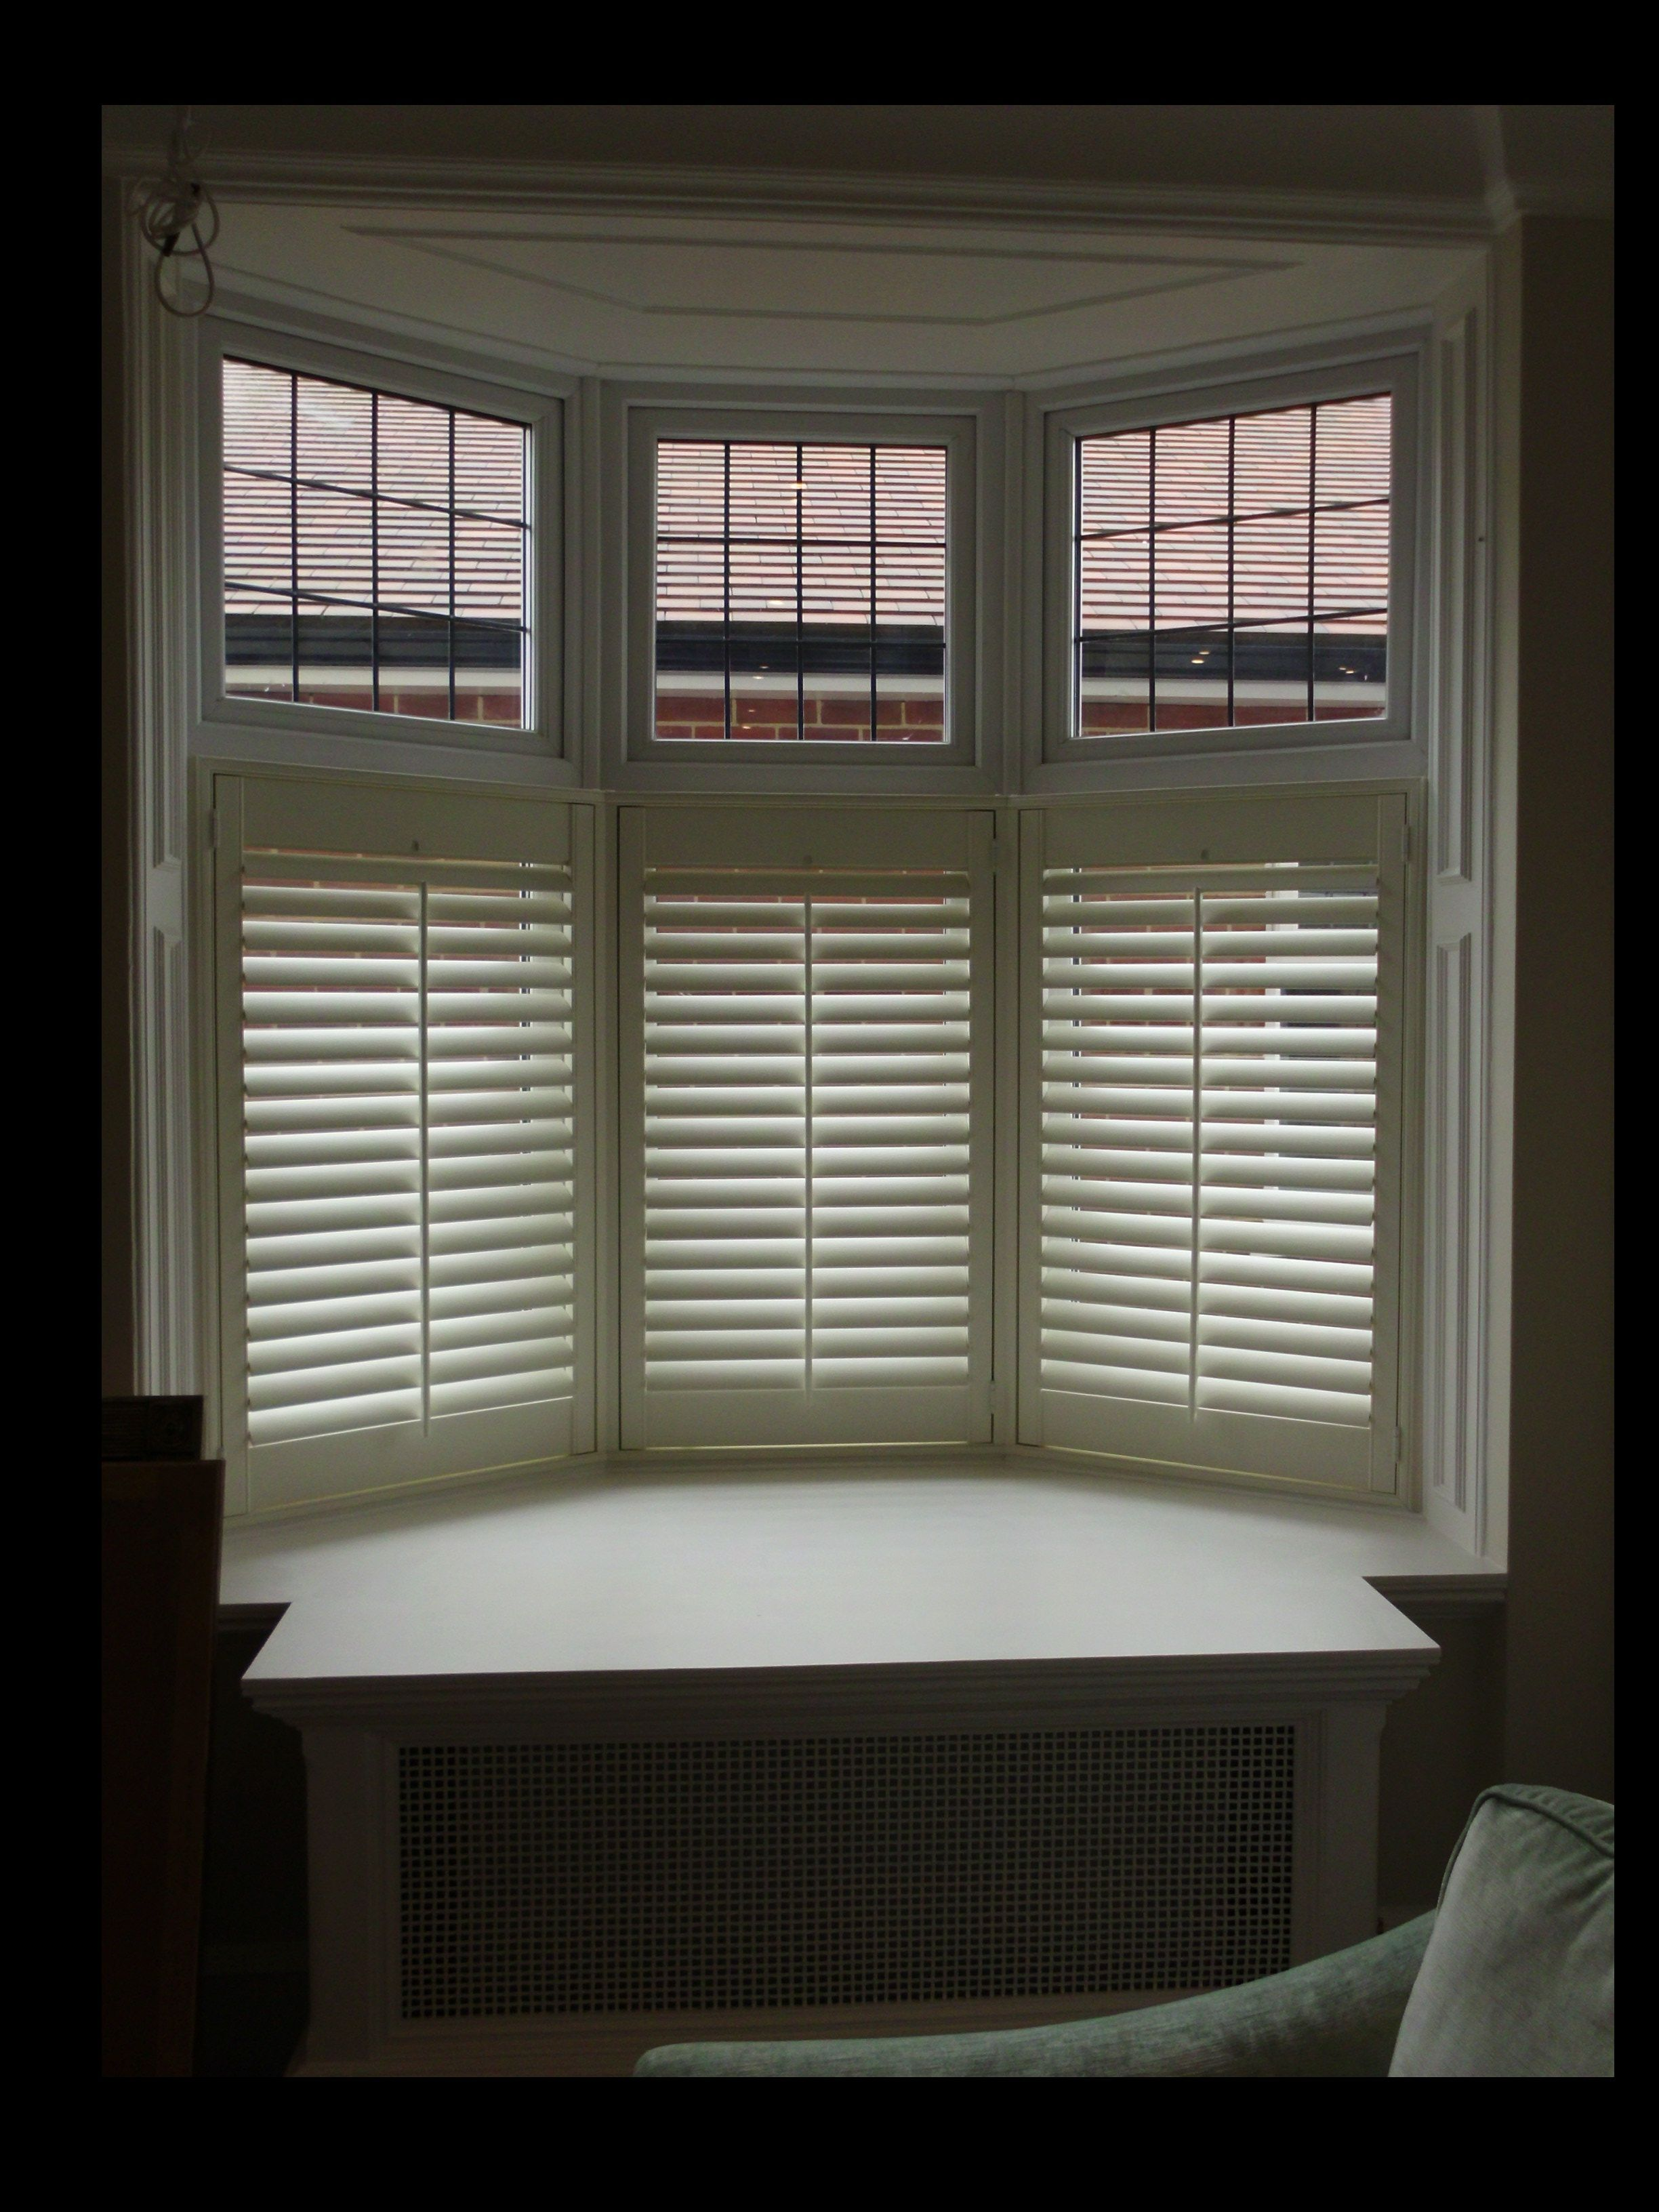 A Three Sided Bay Window With Cafe Style Shutters And